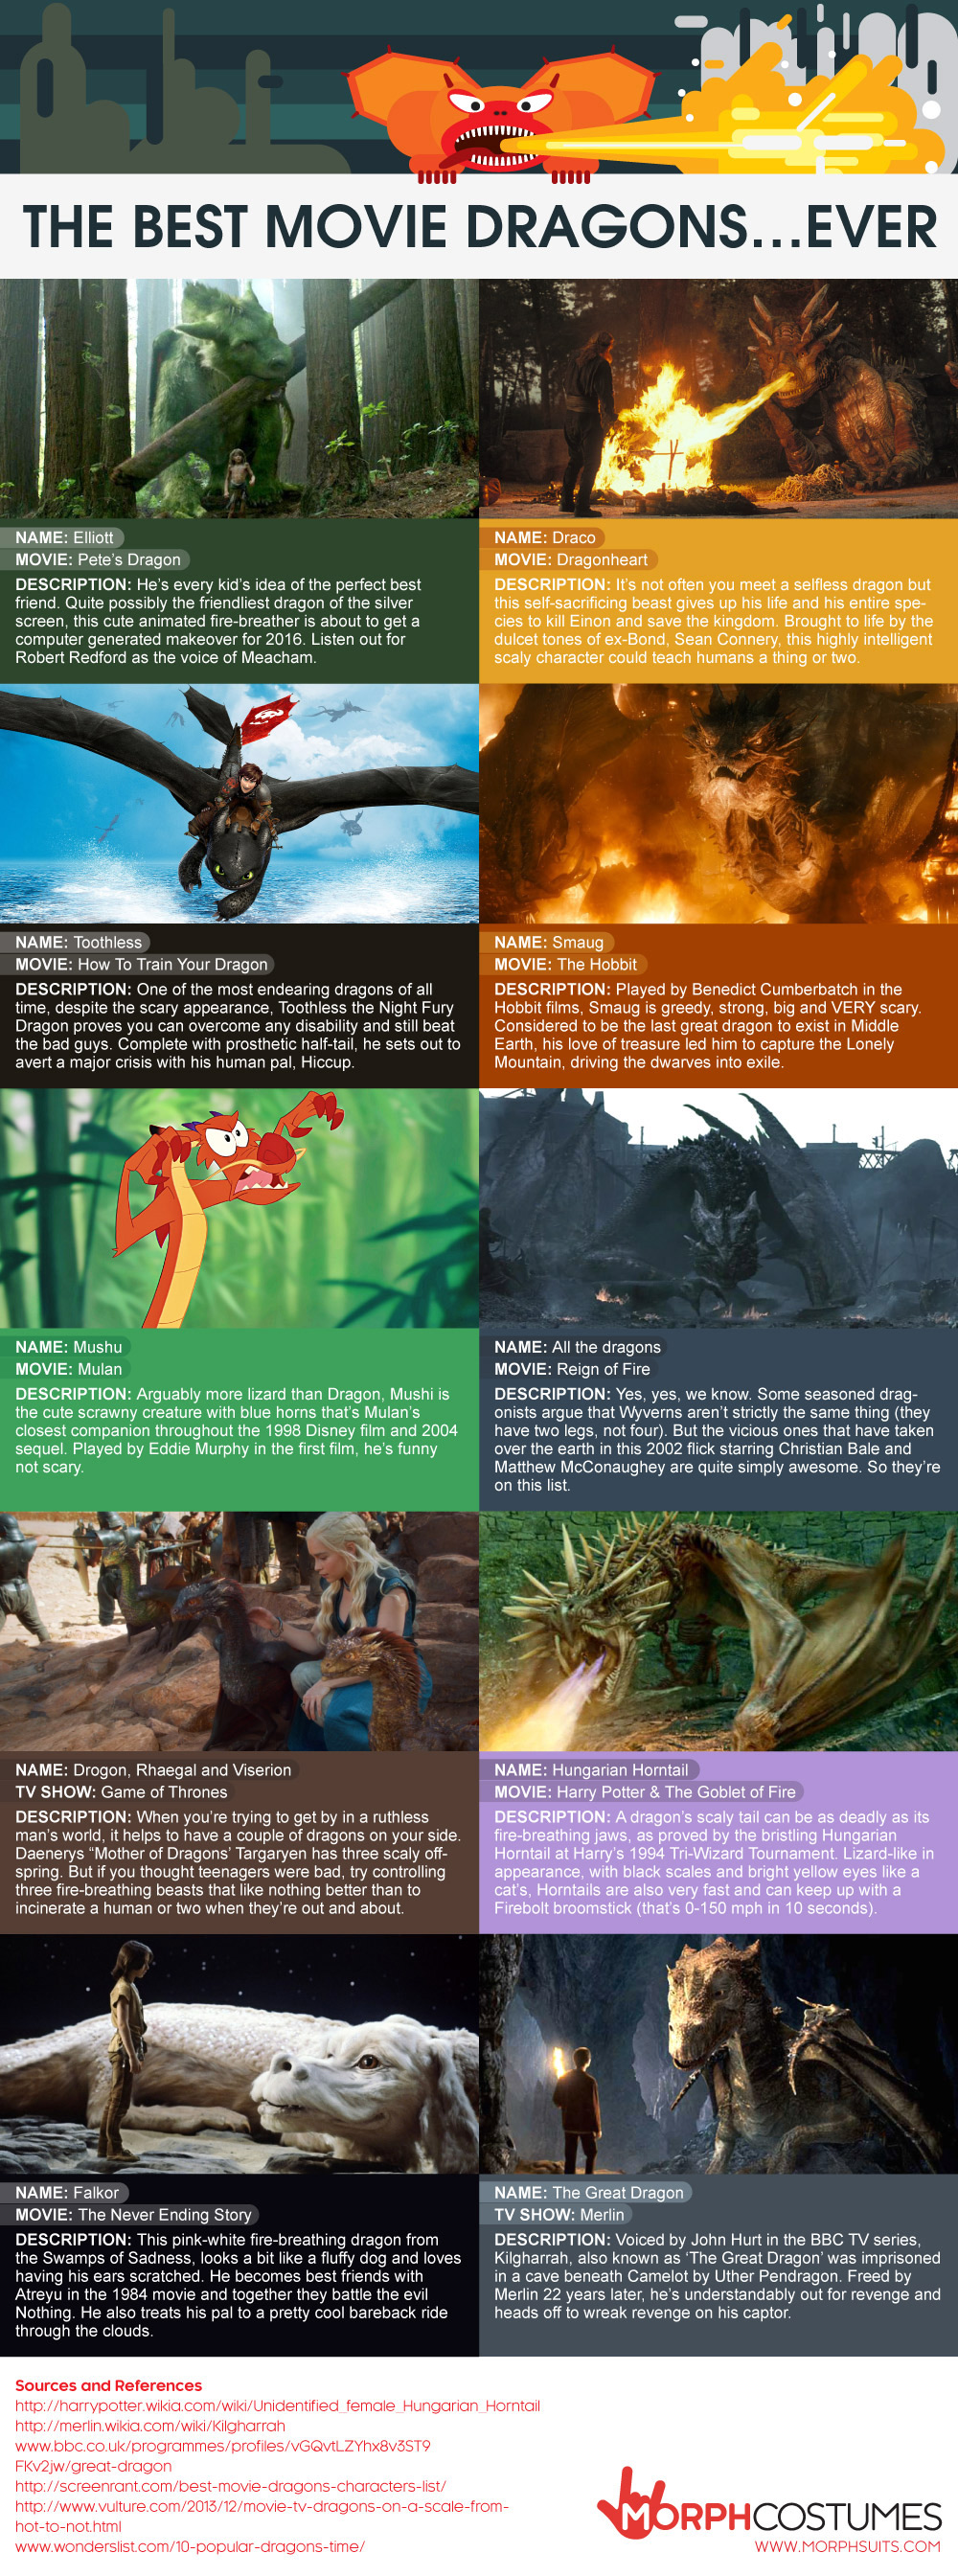 The Best Movie Dragons (Infographic)